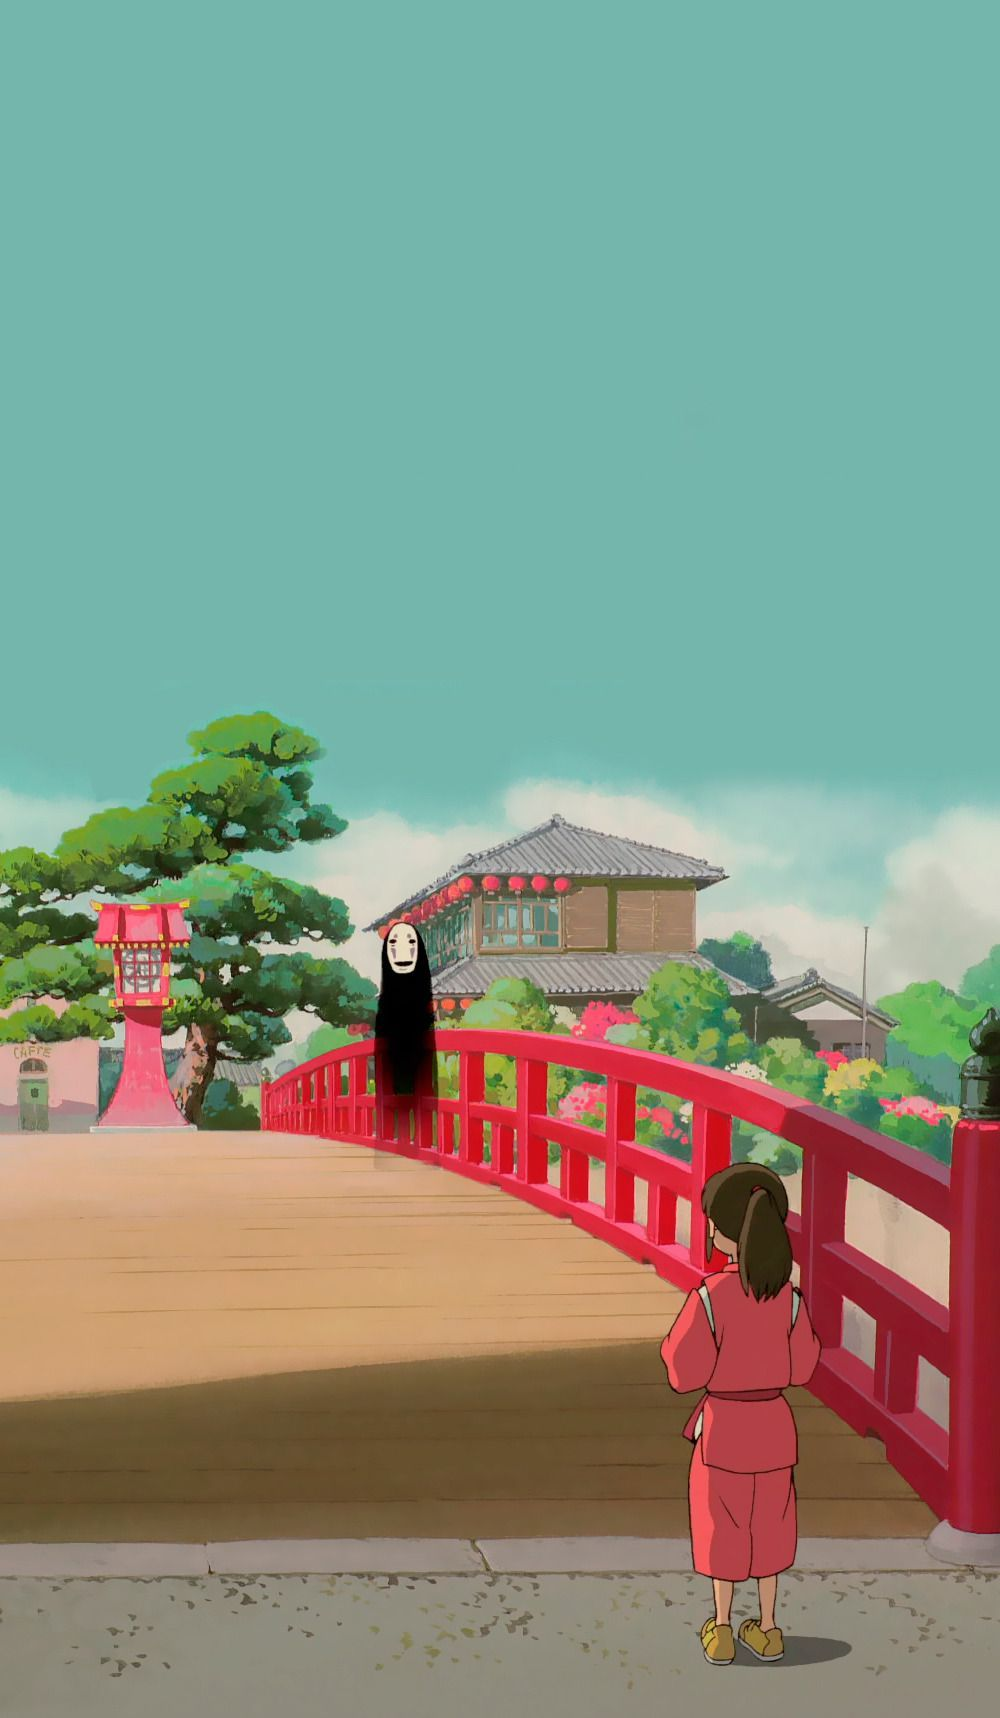 Anime Aesthetic Wallpaper Spirited Away Animecouple Animefacts Animefreak In 2020 Studio Ghibli Spirited Away Anime Scenery Wallpaper Studio Ghibli Background